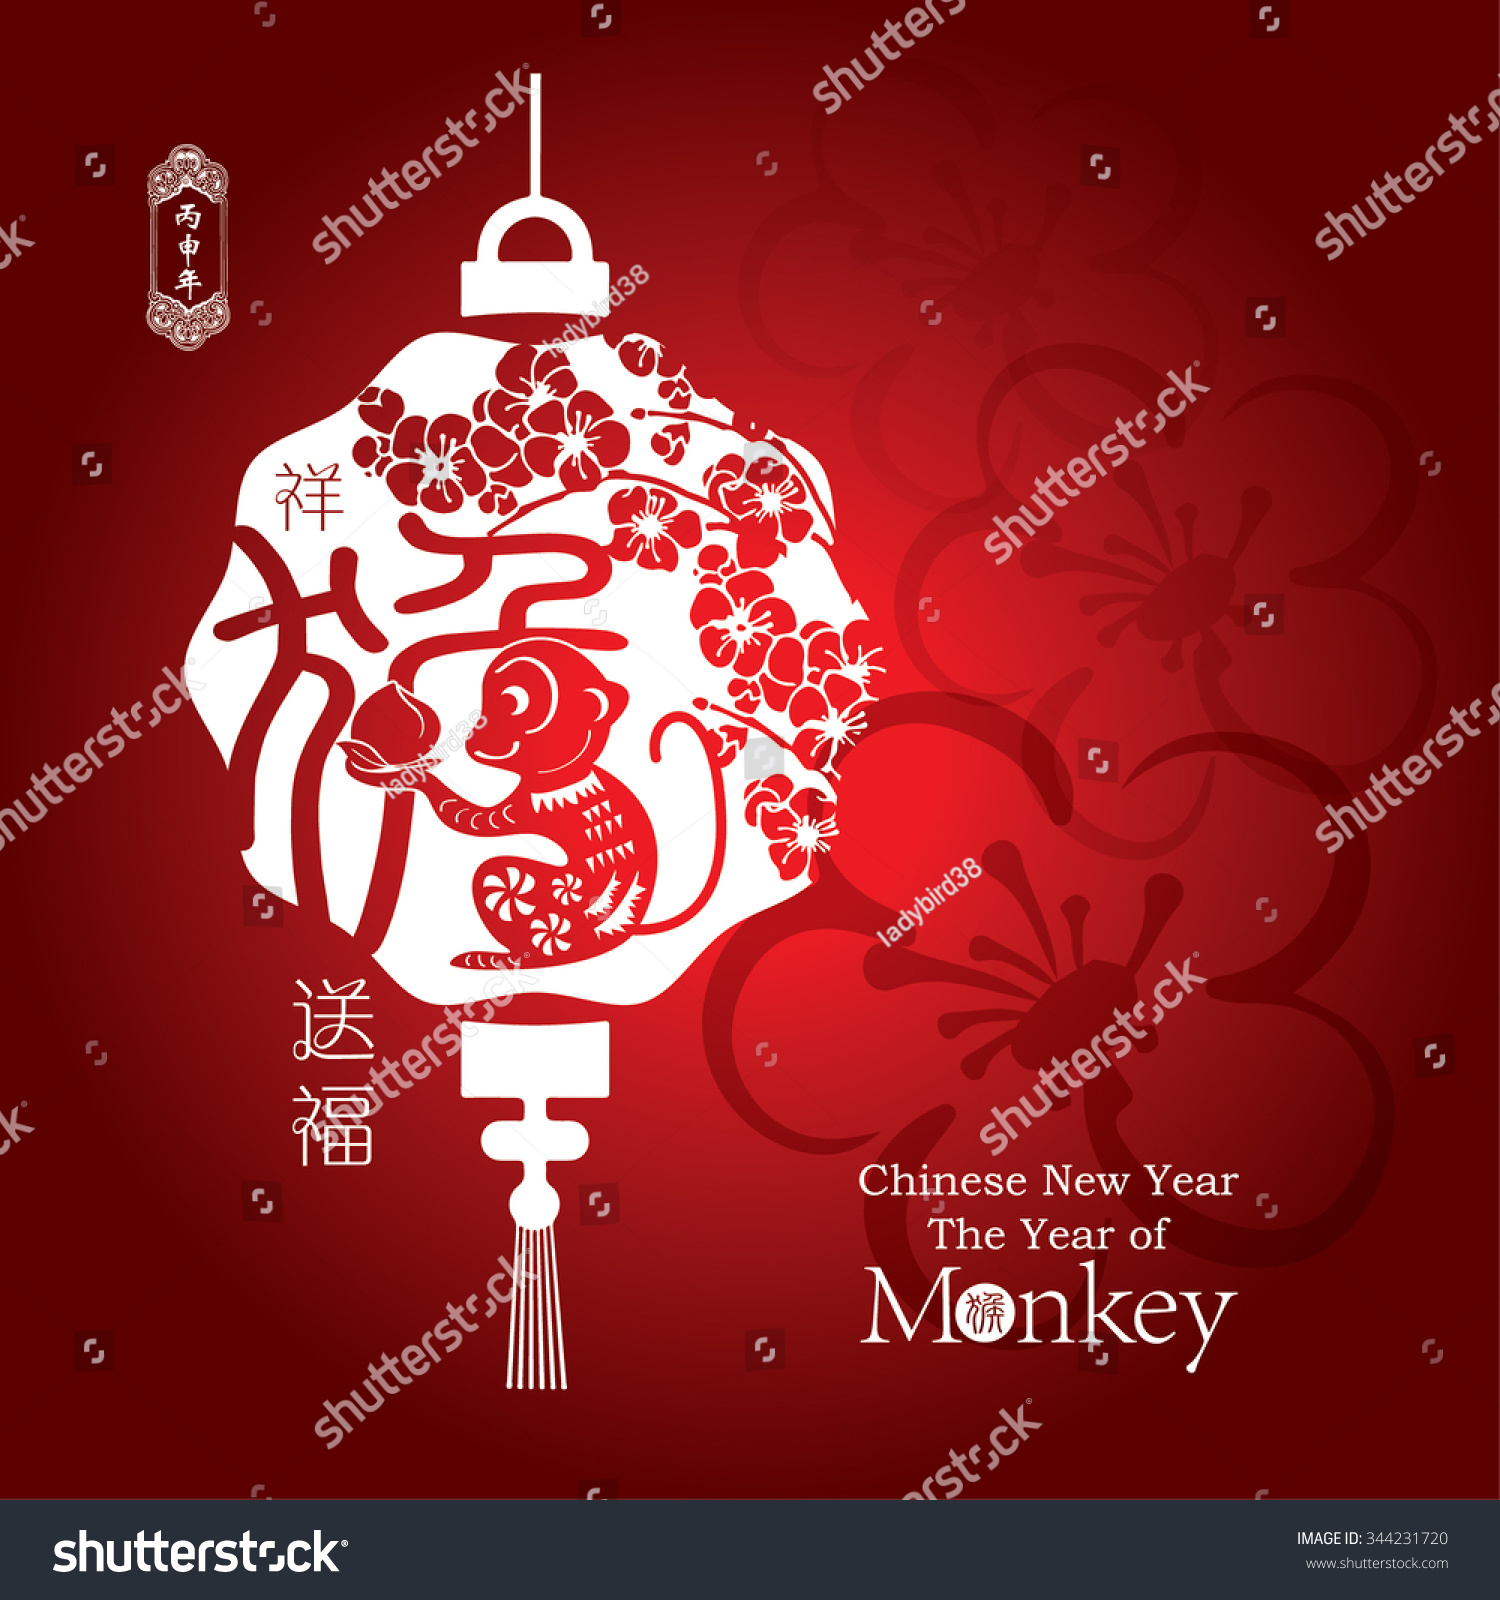 Chinese Zodiac Monkey Translation Small Text Stock Vector ...